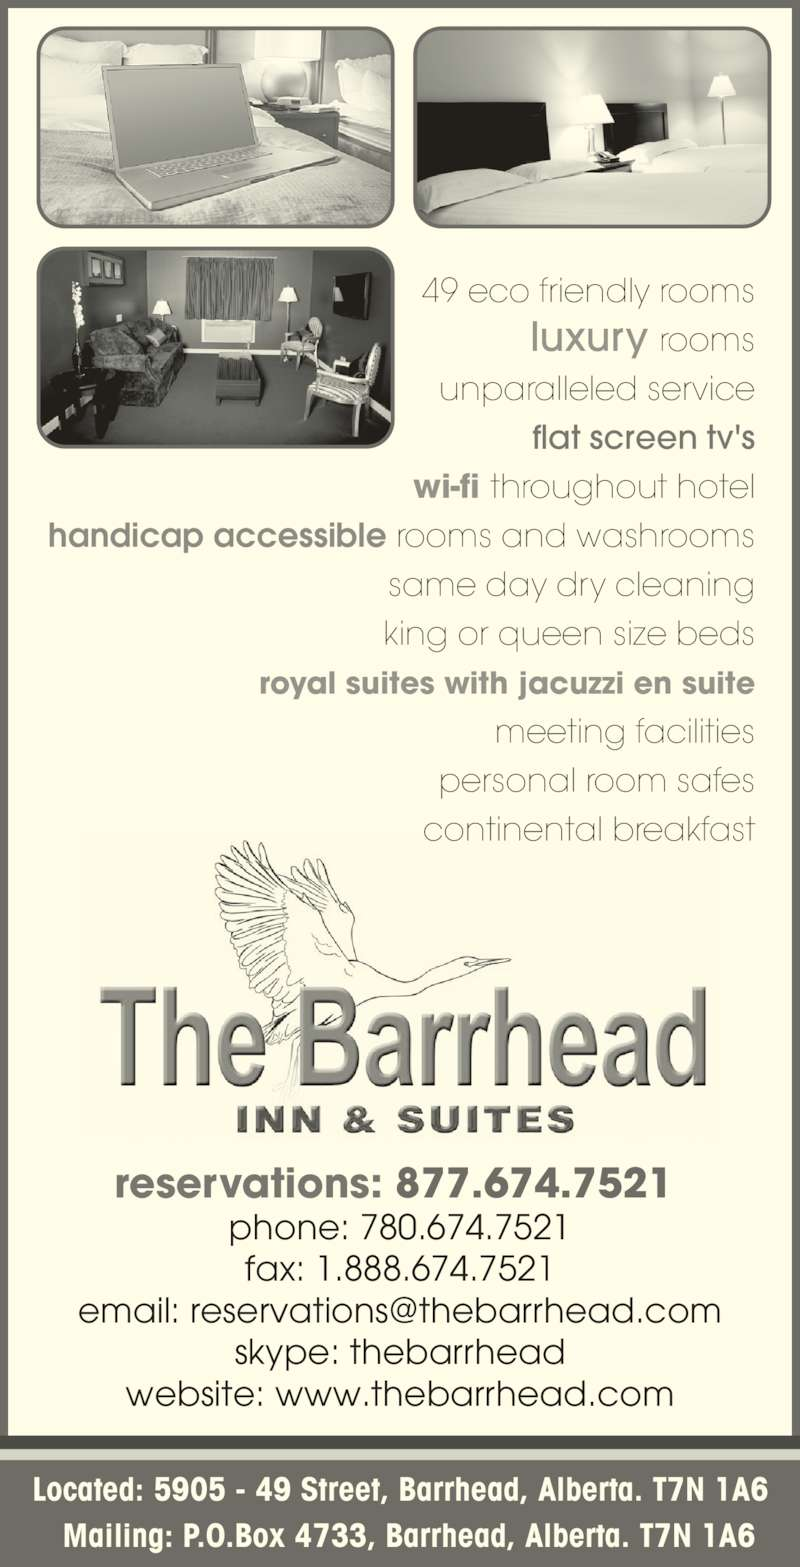 The Barrhead Inn & Suites (780-674-7521) - Display Ad - reservations: 877.674.7521wi-fithroughout hotel  |  handic p accessibleooms nd washrooms Located: 5905 - 49 Street, Barrhead, Alberta. T7N 1A6     Mailing: P.O.Box 4733, Barrhead, Alberta. T7N 1A6 reservations: 877.674.7521  phone: 780.674.7521 fax: 1.888.674.7521 skype: thebarrhead website: www.thebarrhead.com 49 eco friendly rooms luxury rooms unparalleled service flat screen tv's wi-fi throughout hotel handicap accessible rooms and washrooms same day dry cleaning king or queen size beds royal suites with jacuzzi en suite meeting facilities personal room safes continental breakfast